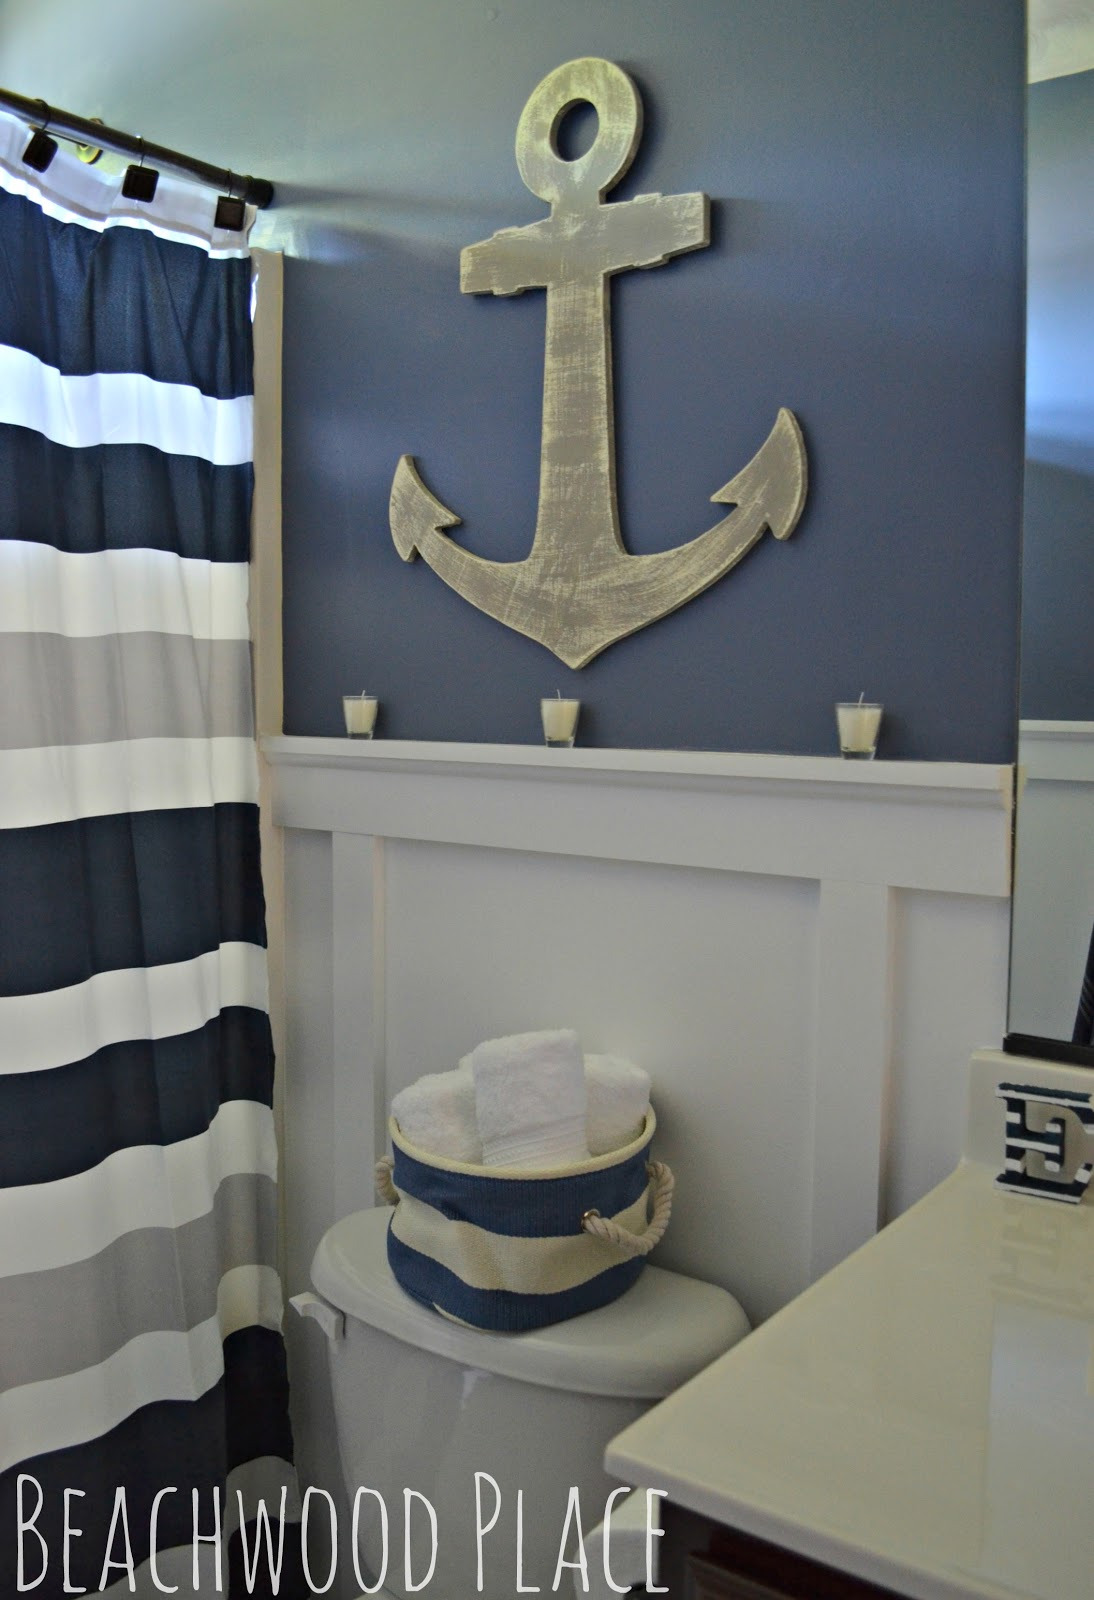 Nautical Bathroom Decorations Lovely 25 Best Nautical Bathroom Ideas and Designs for 2020